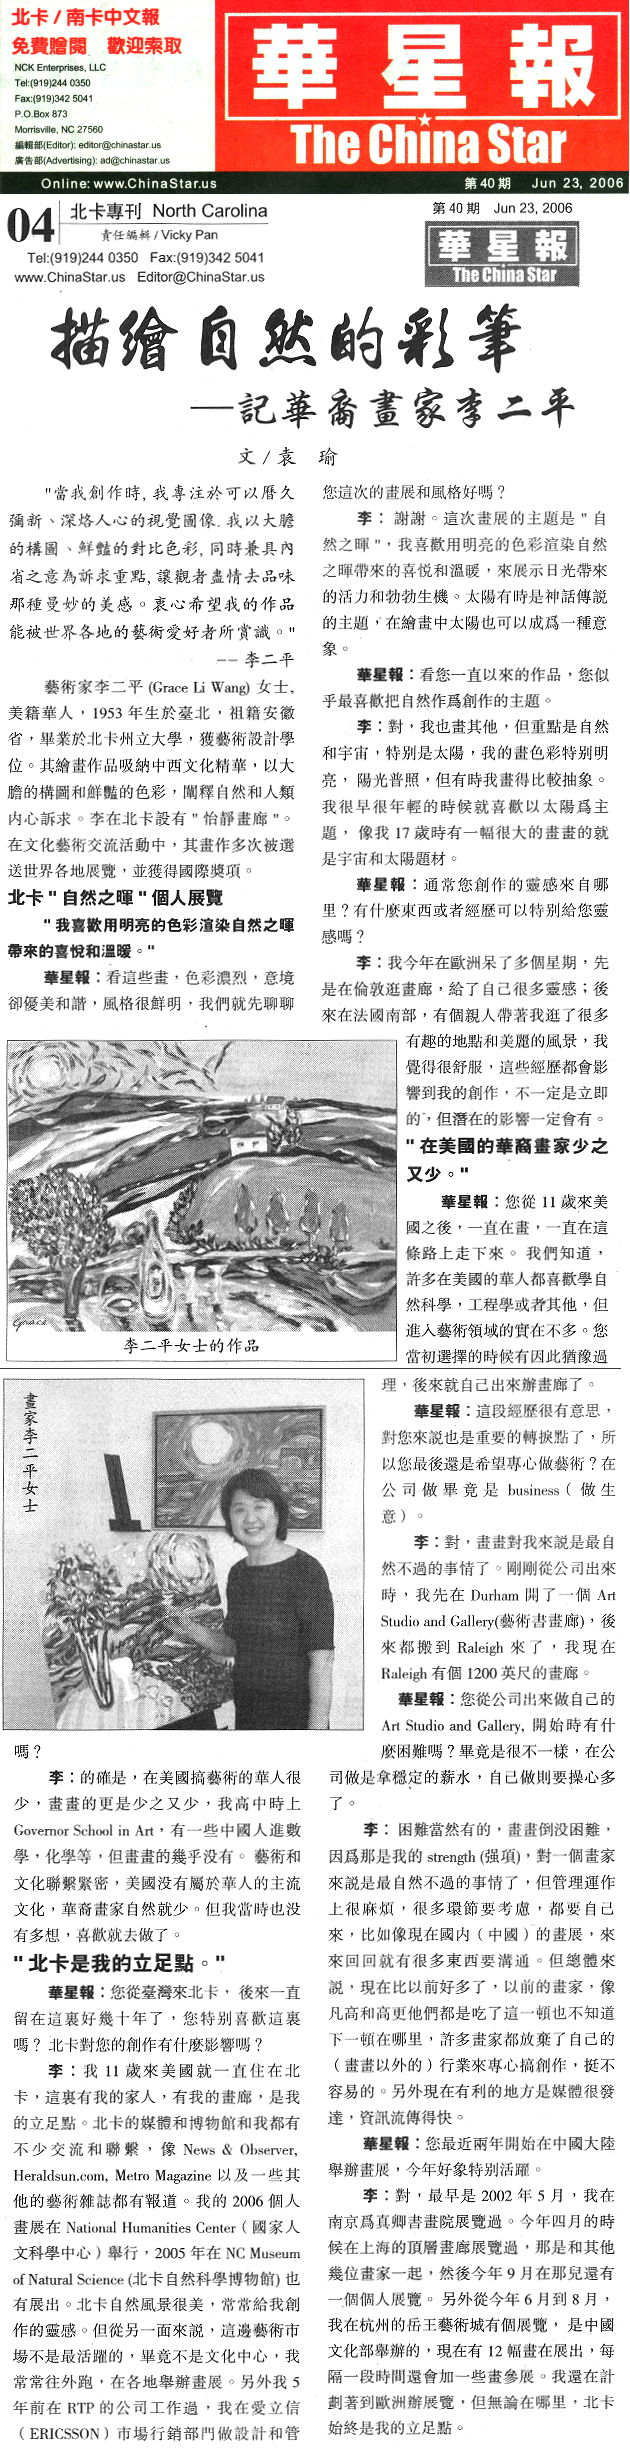 Article in the China Star